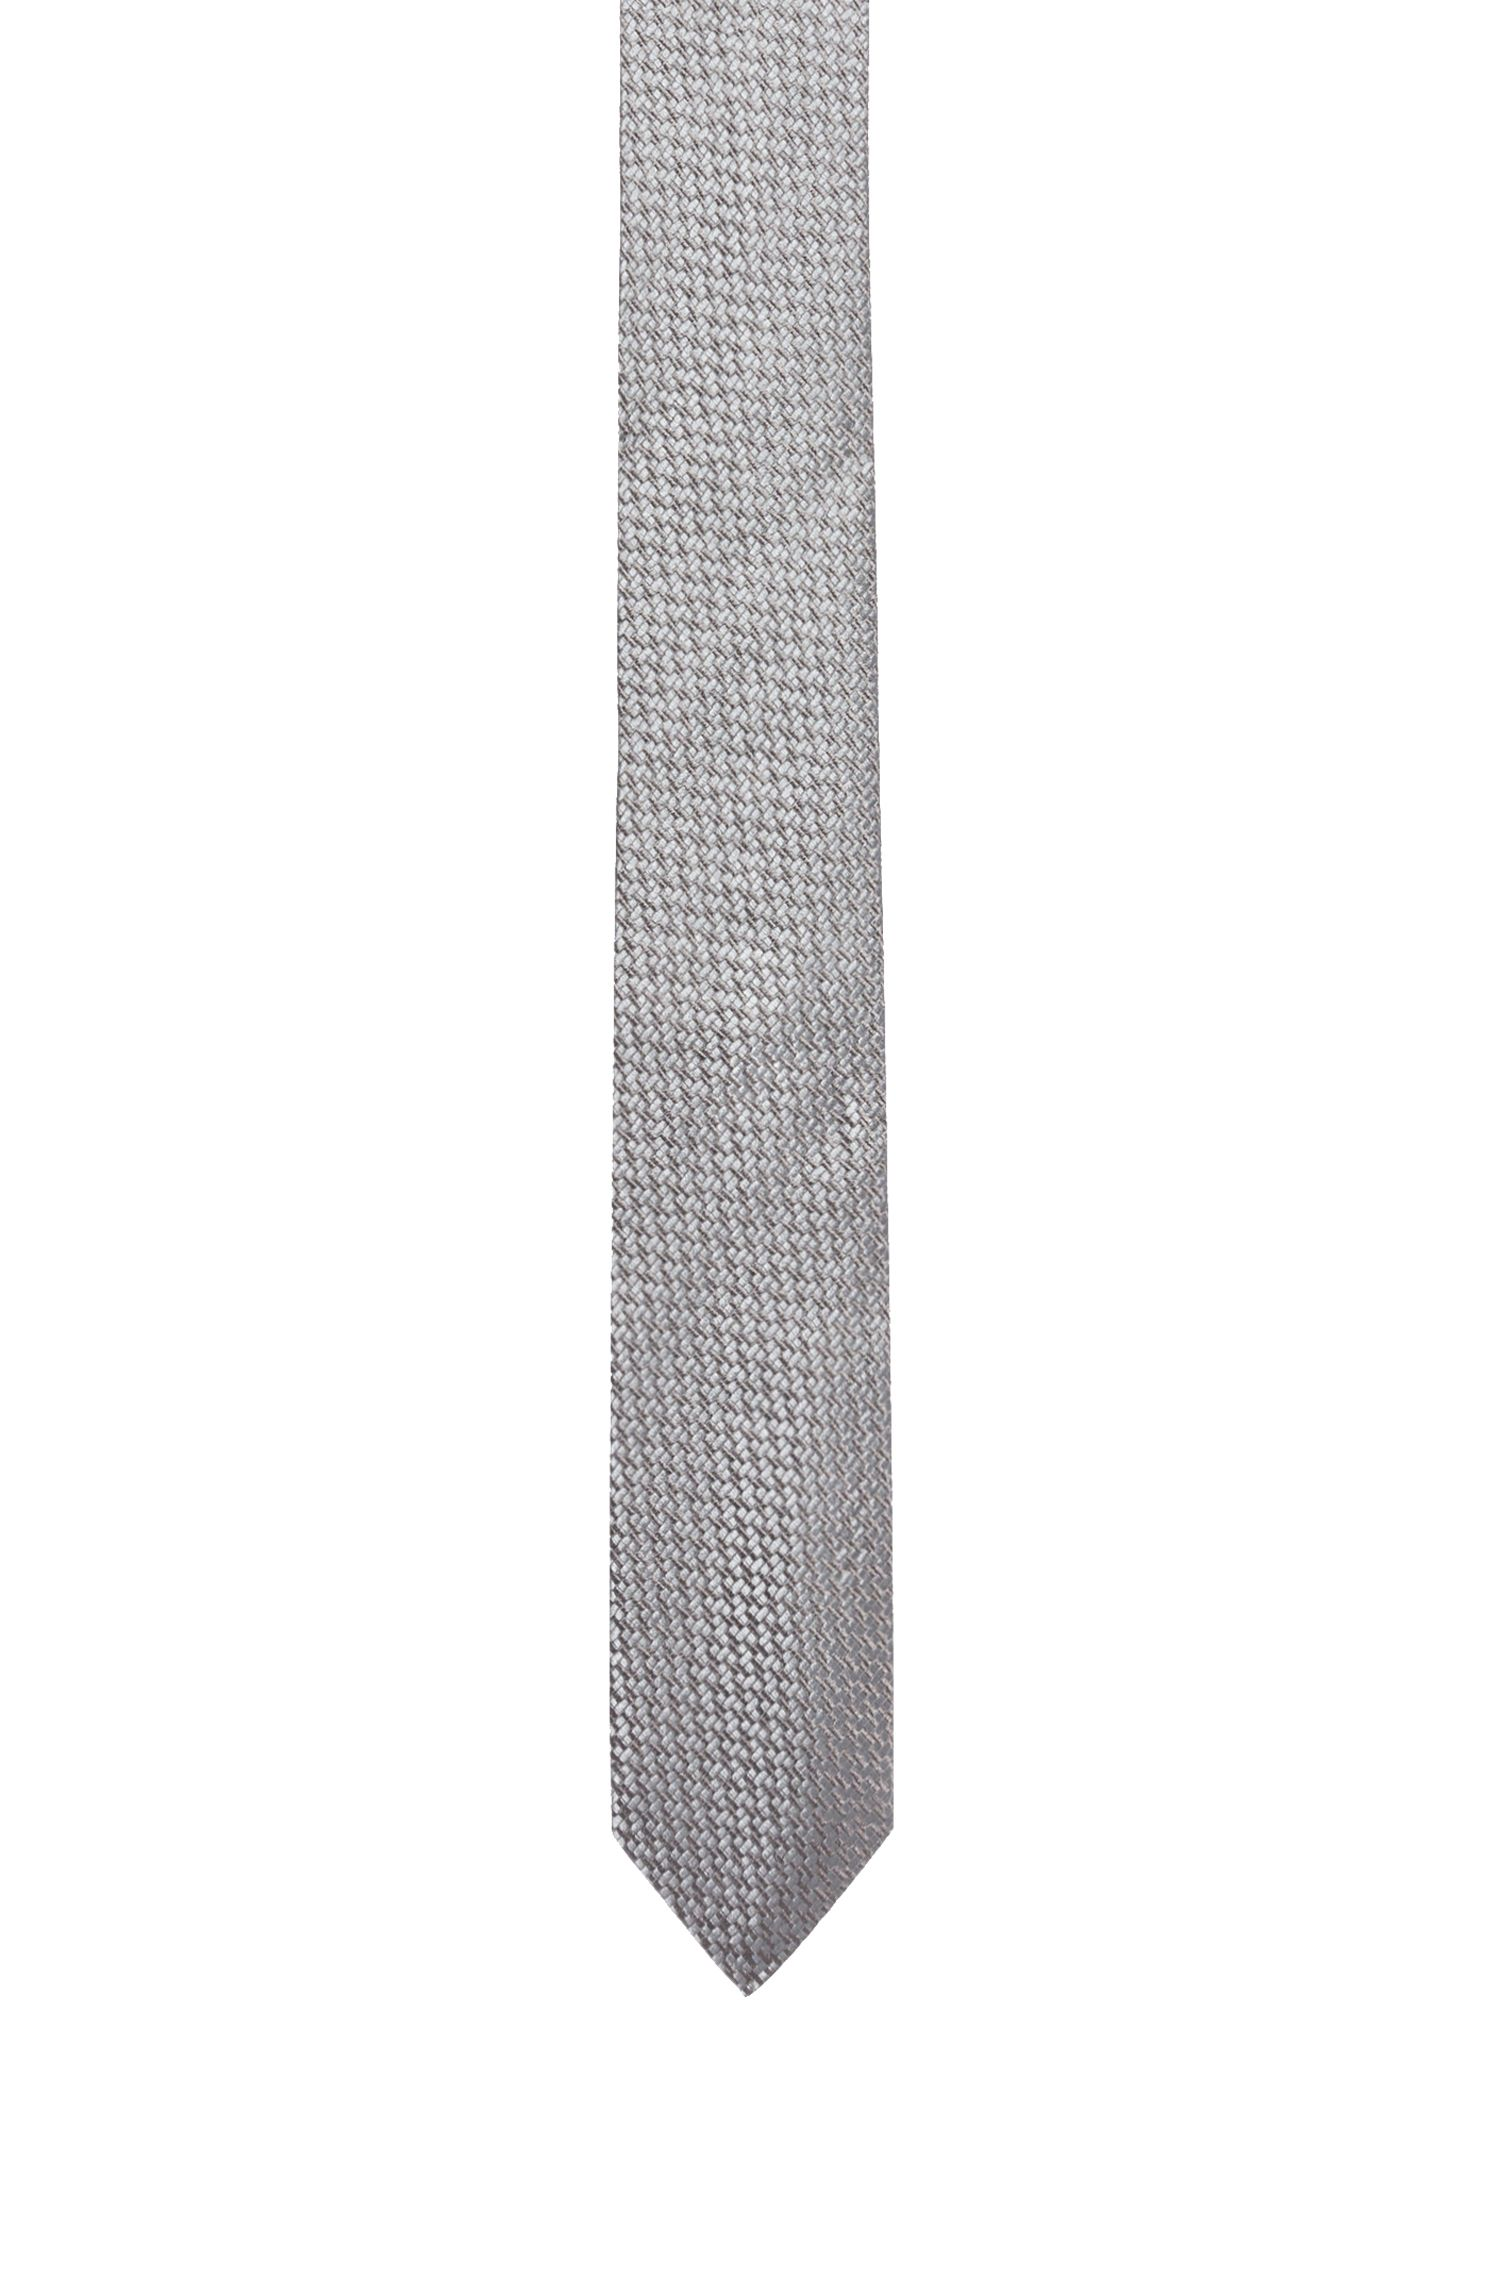 Silk tie with modern woven structure